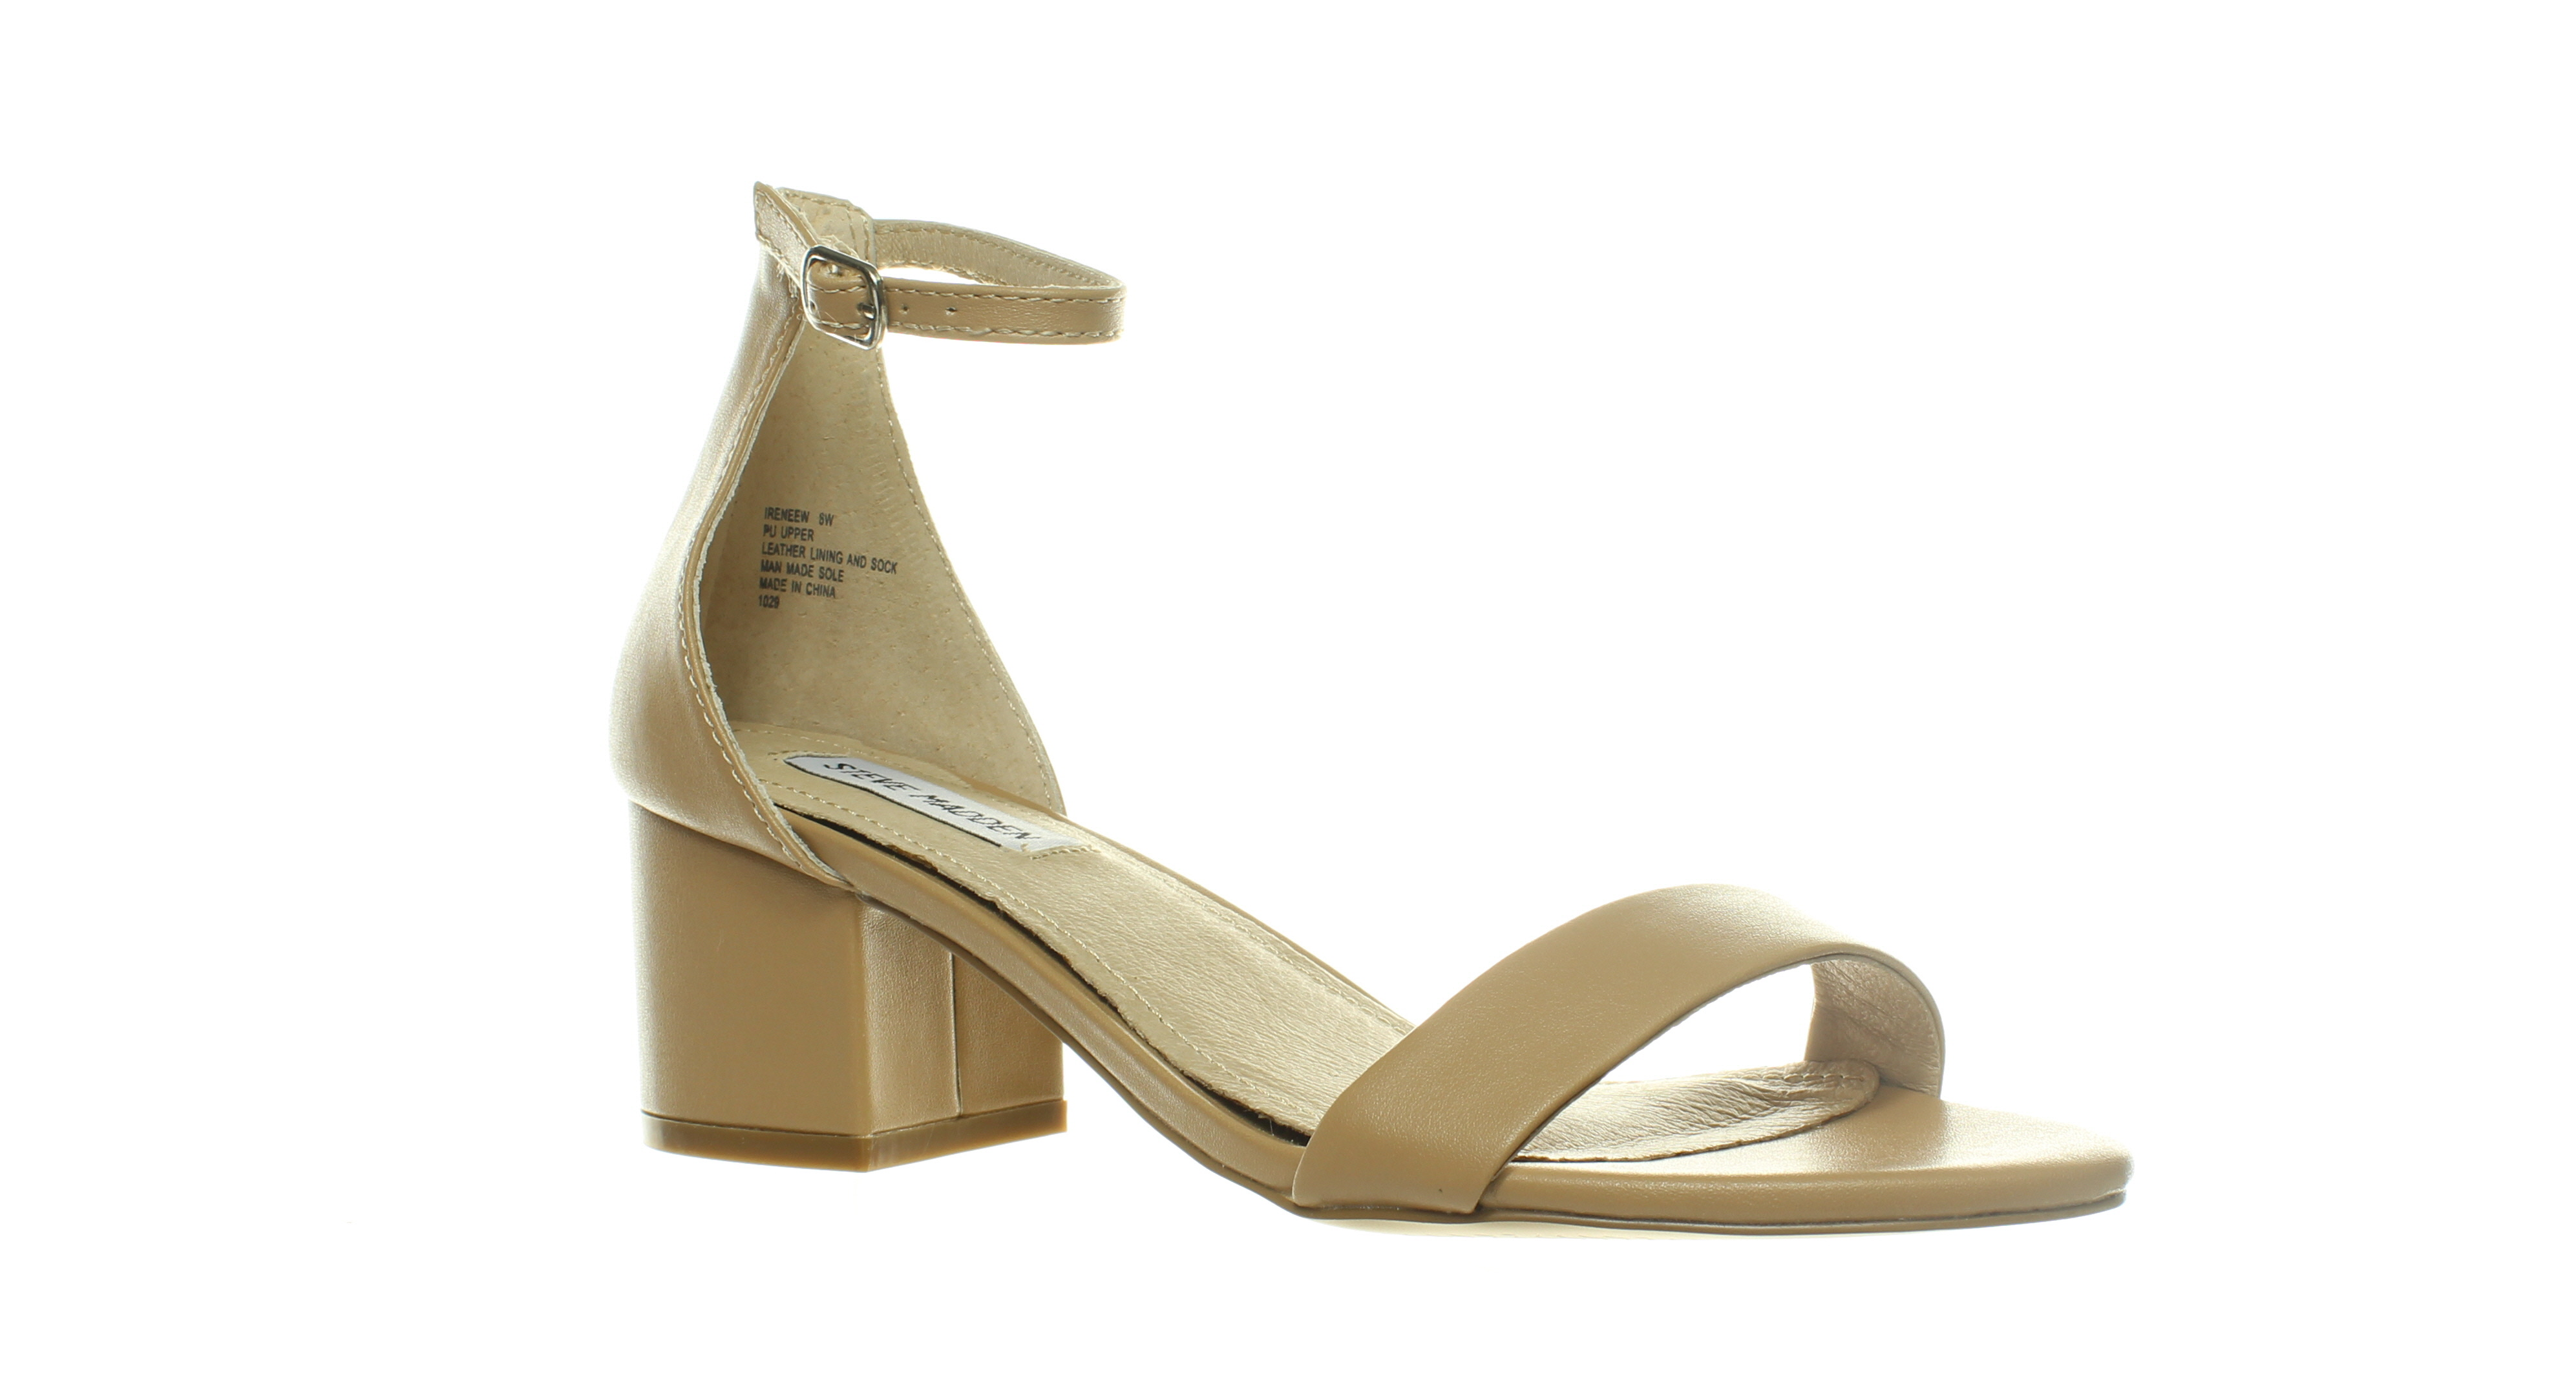 a7654e25b30 Details about Steve Madden Womens Irenee Blush Ankle Strap Heels Size 8  (C,D,W) (452050)